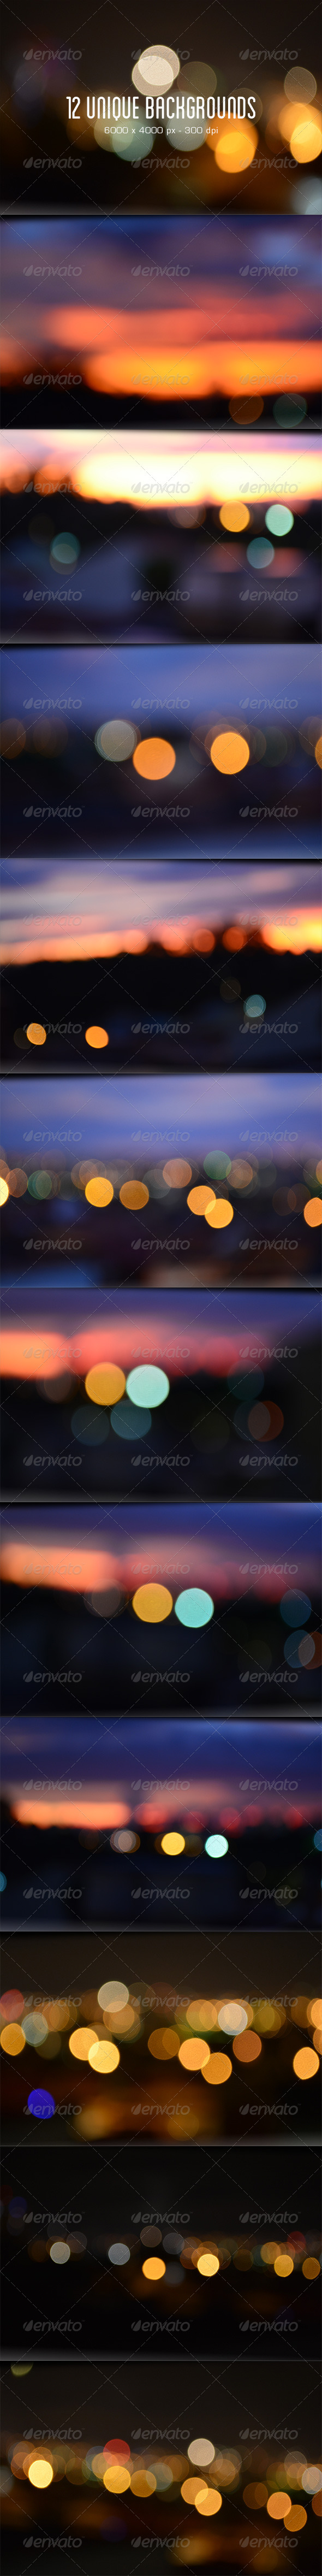 12 Bokeh / Blurred Backgrounds - Abstract Backgrounds